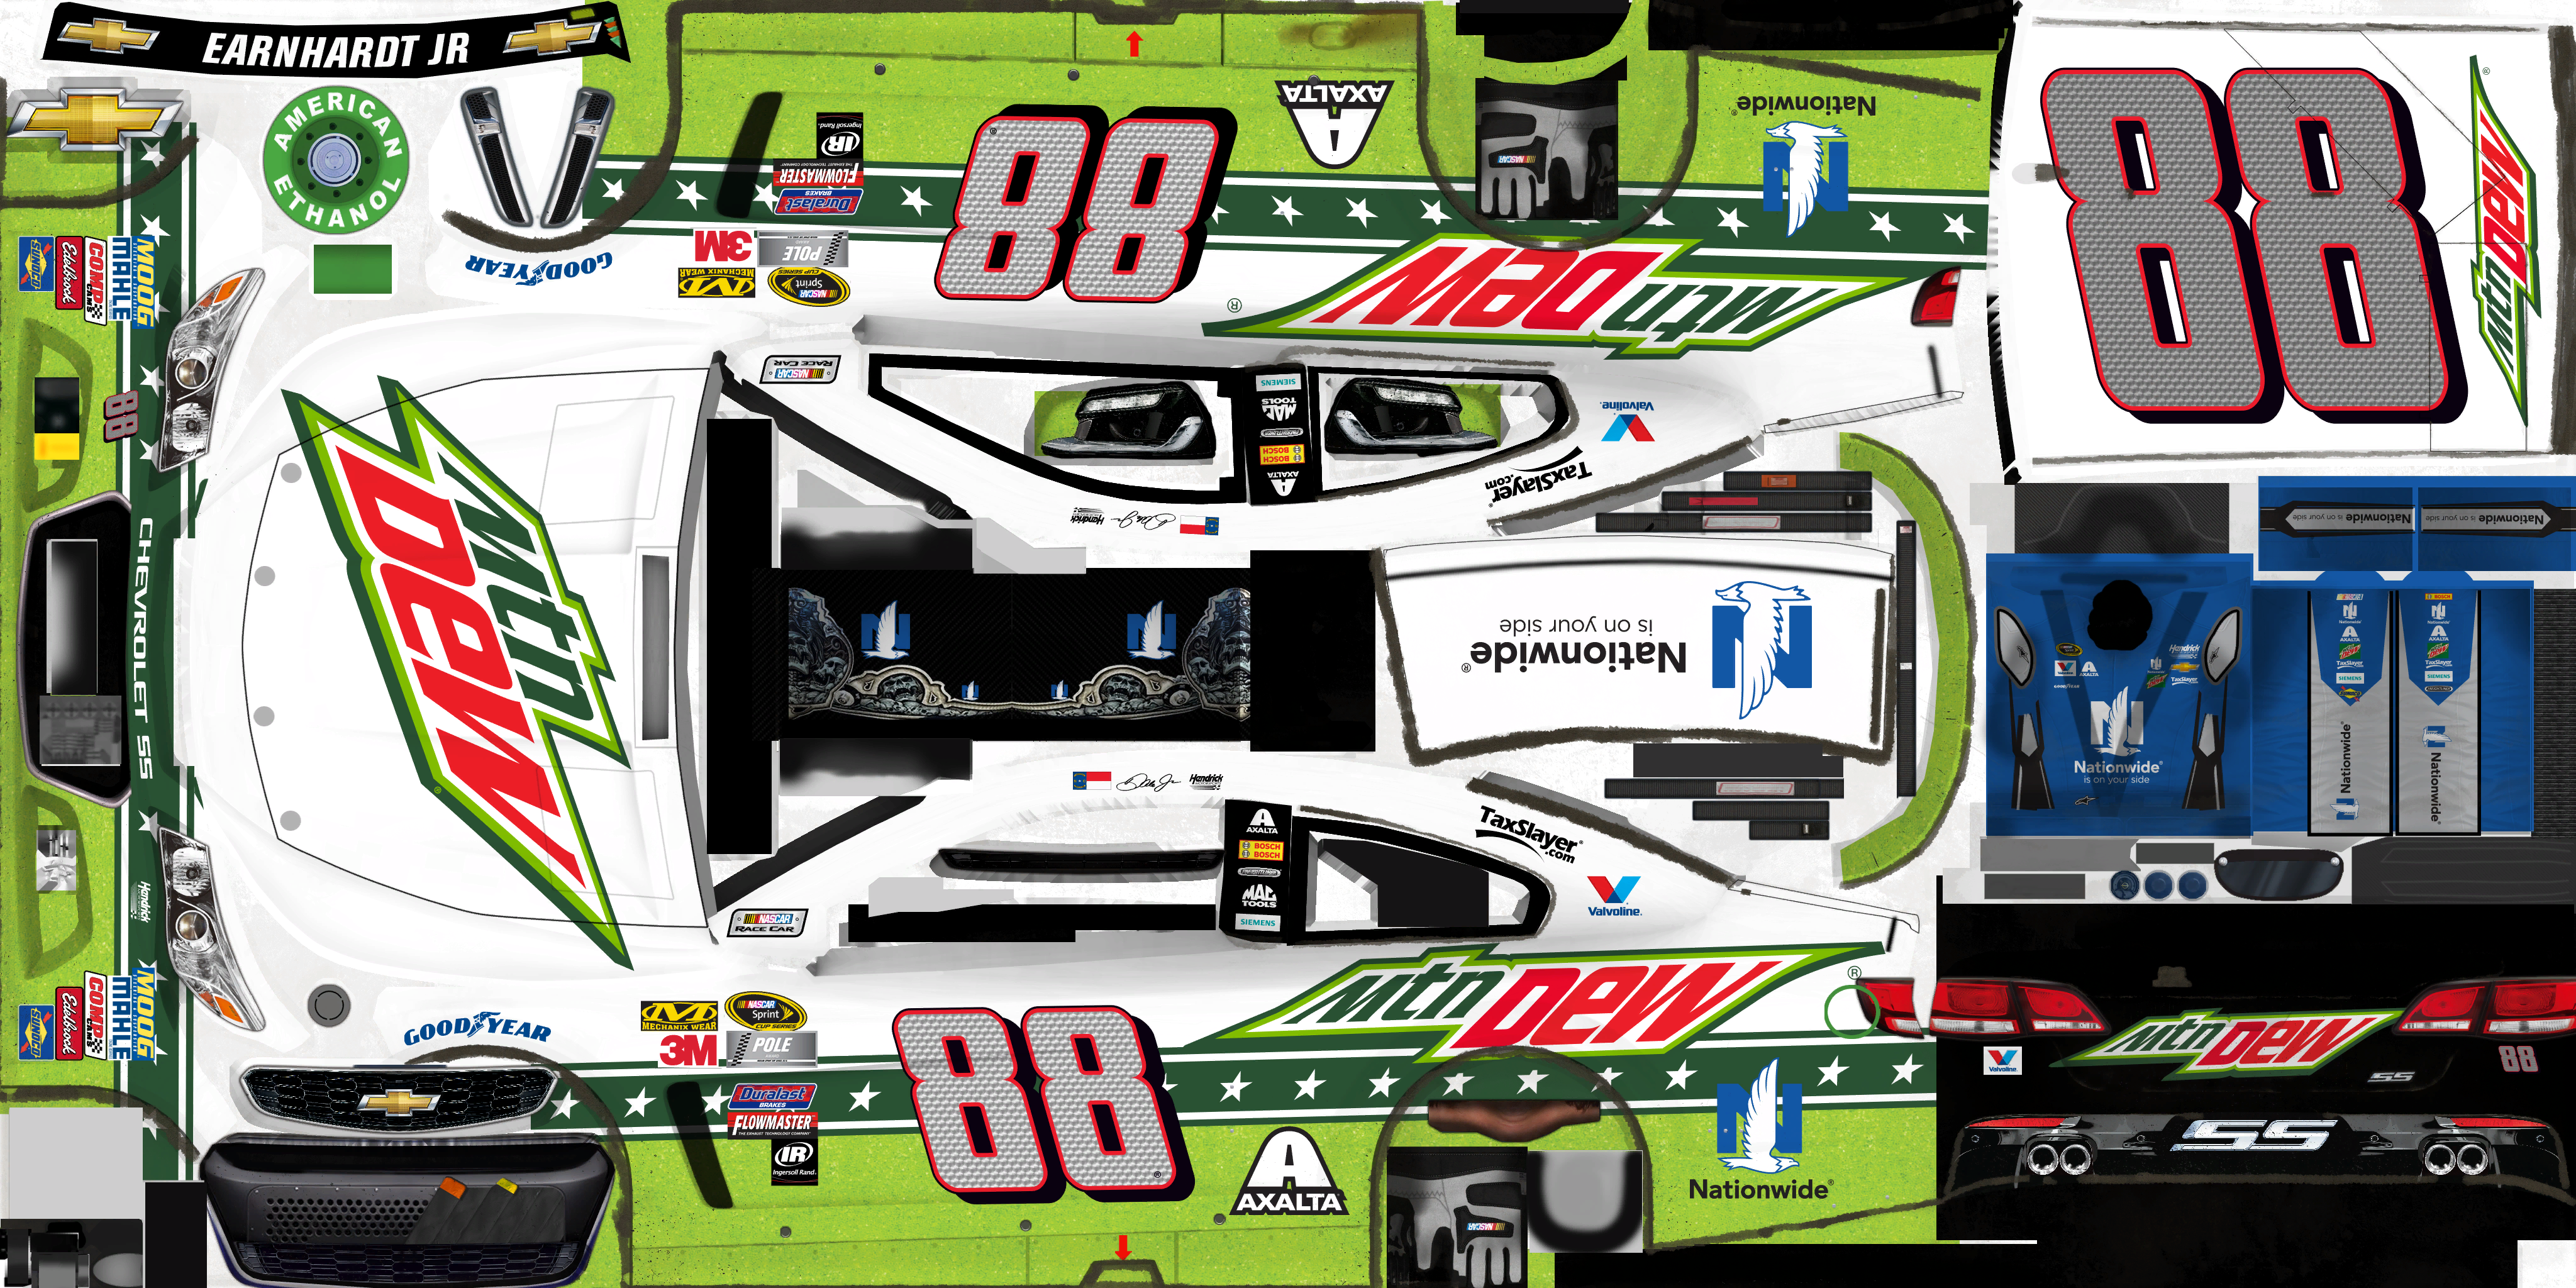 #88 Dale Earnhardt Jr. (Mountain Dew)